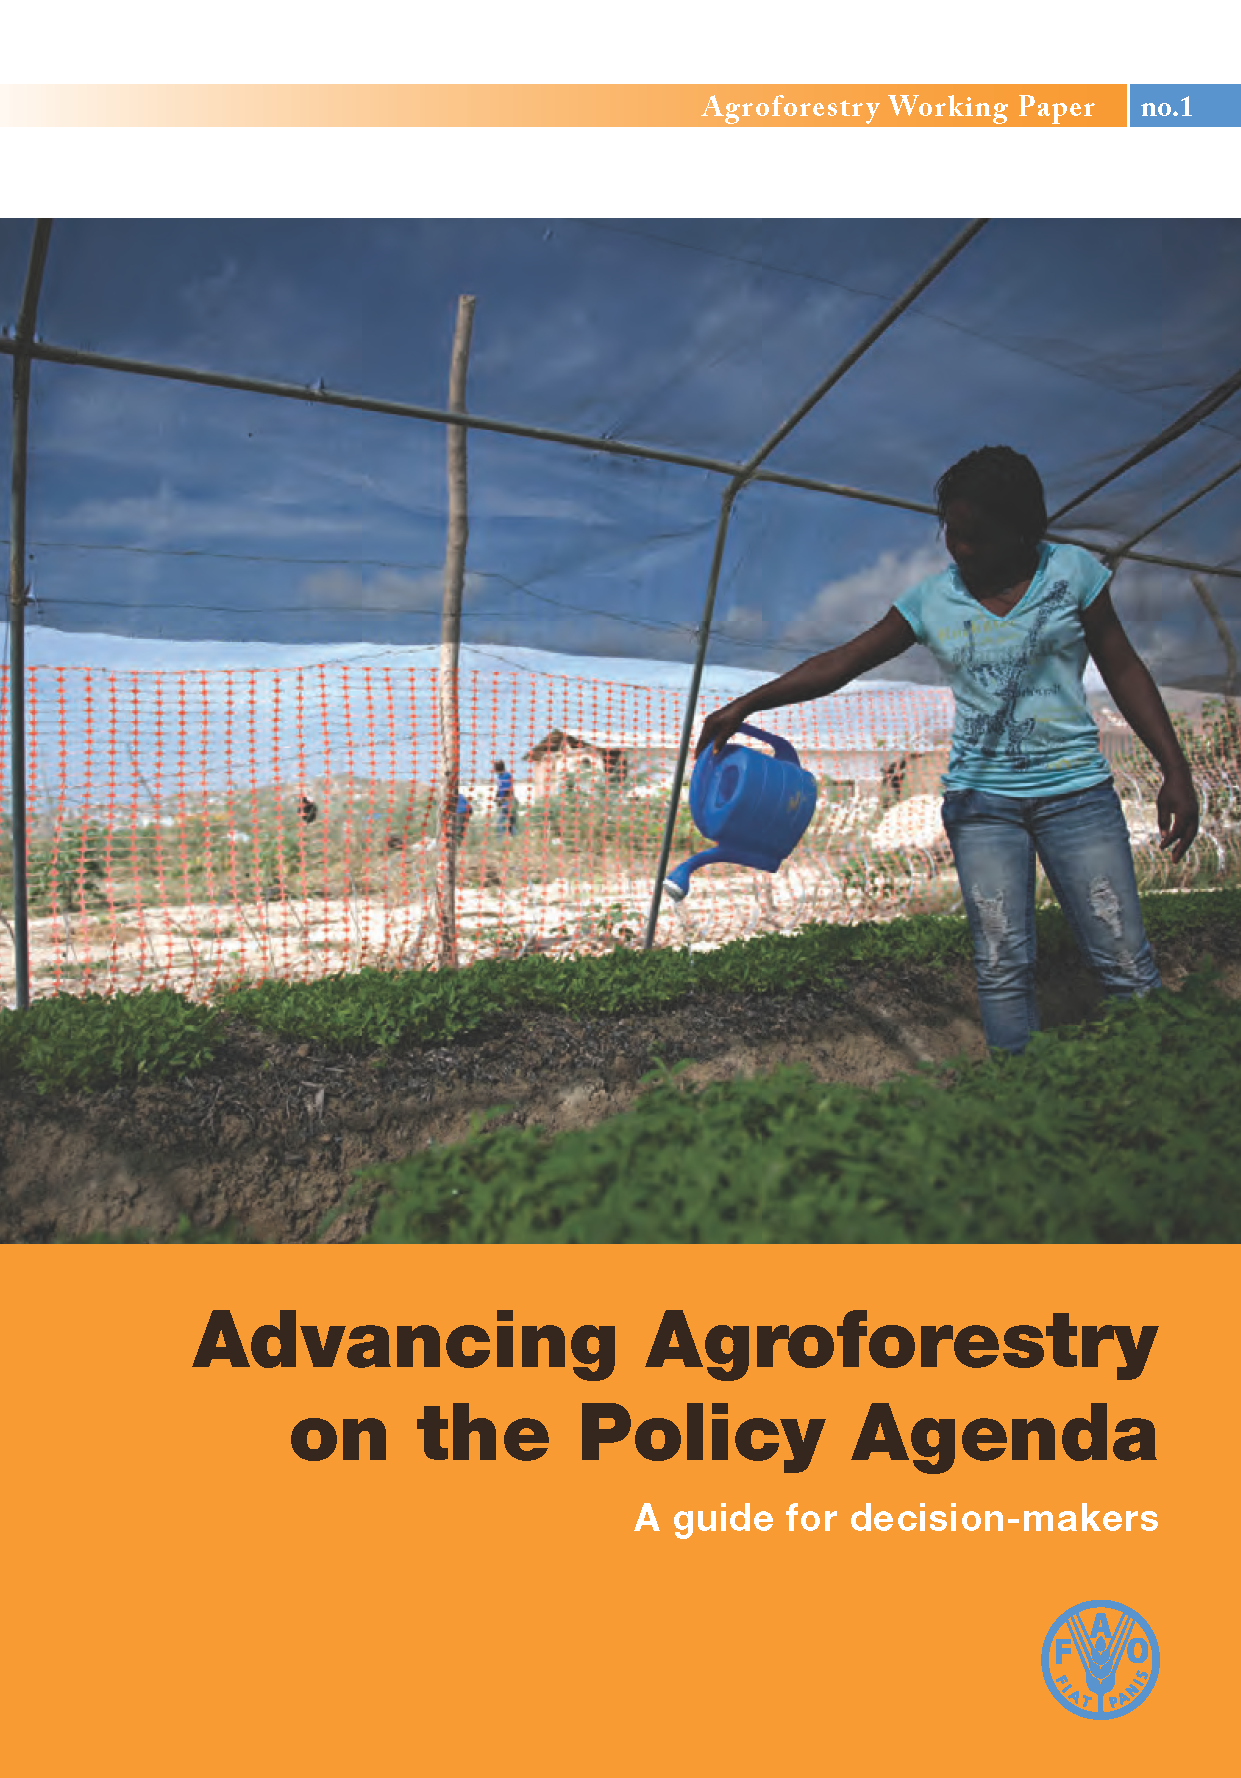 Capa da Advancing Agroforestry on the Policy Agenda: A guide for decision-makers